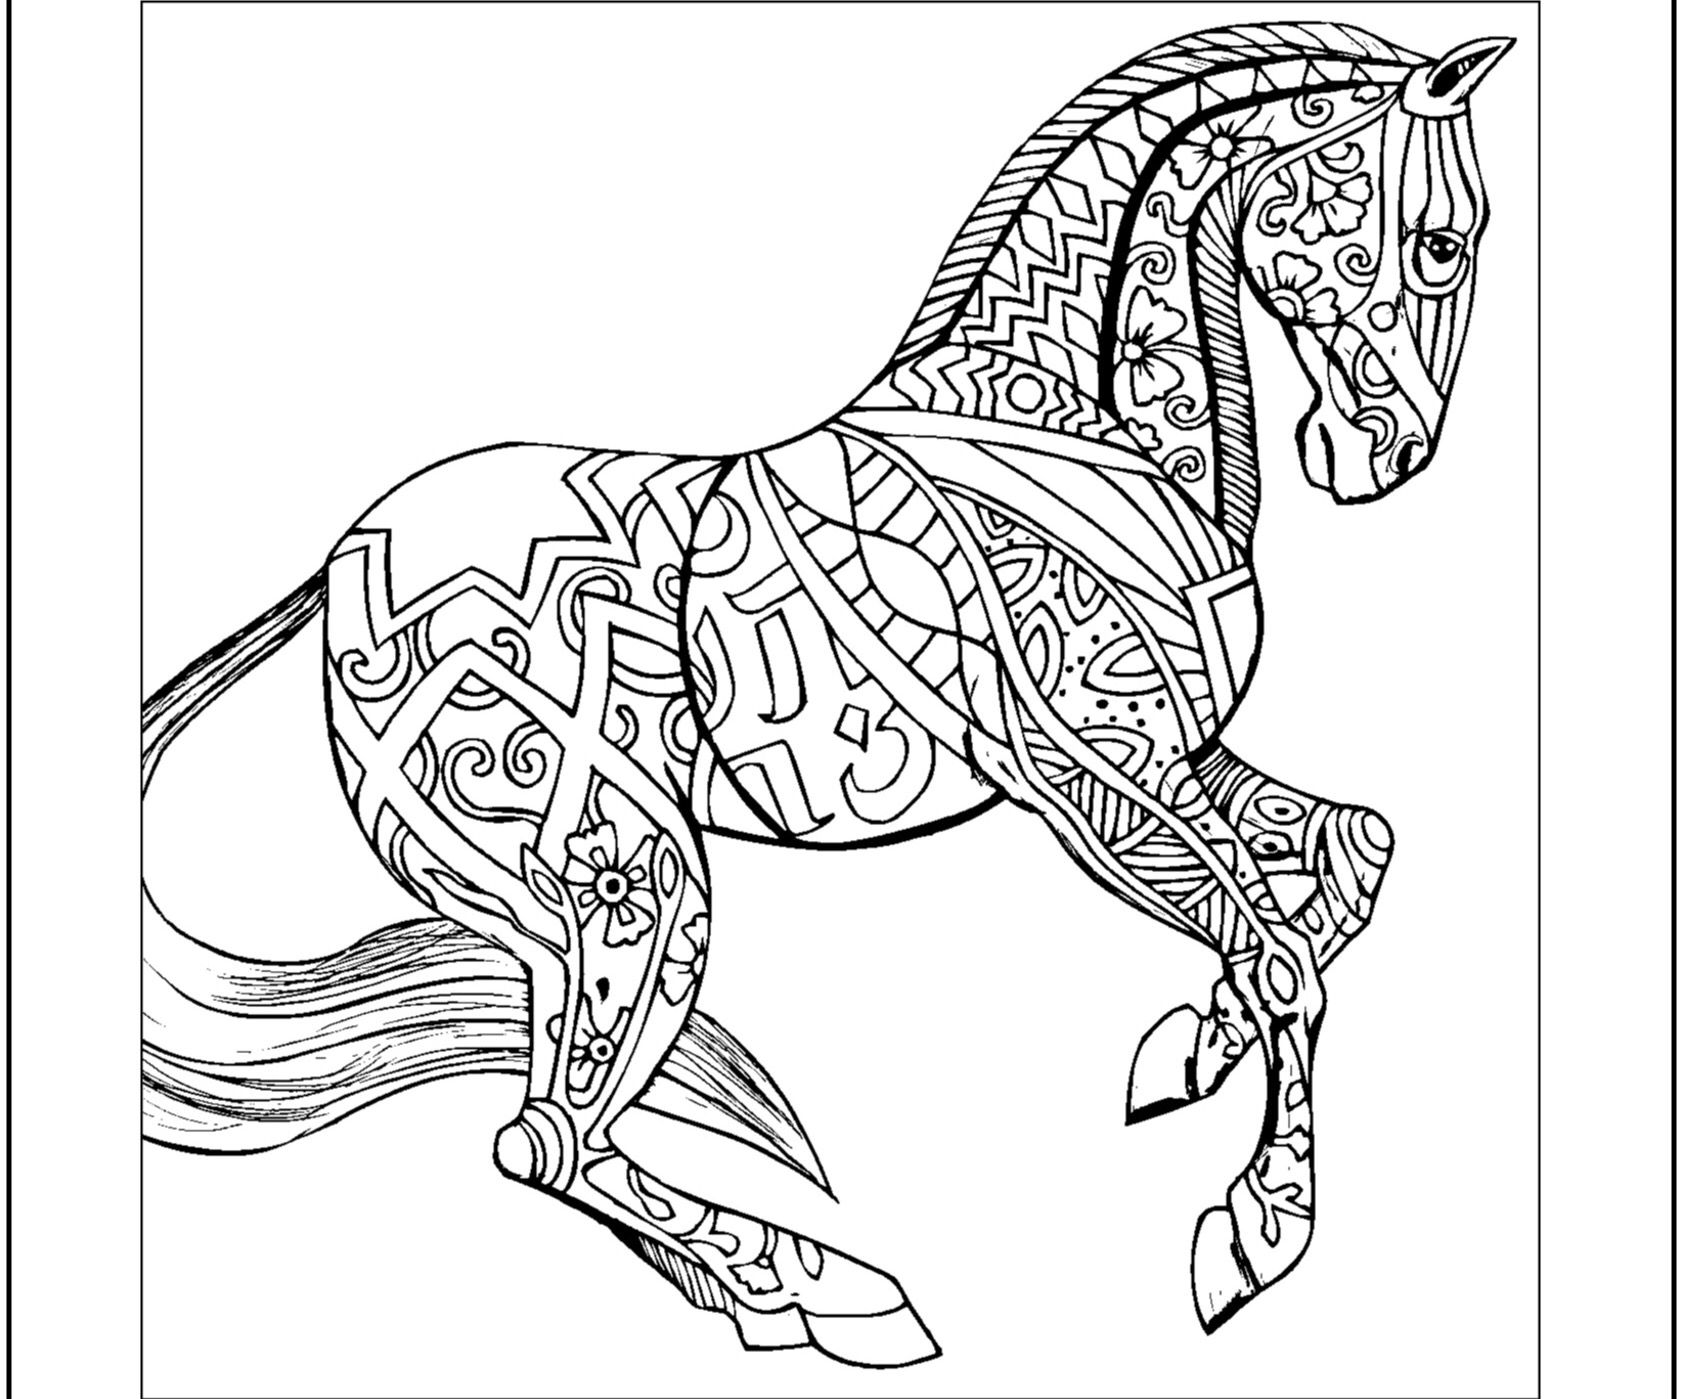 hard drawings to color hard coloring pages free large images color hard drawings to